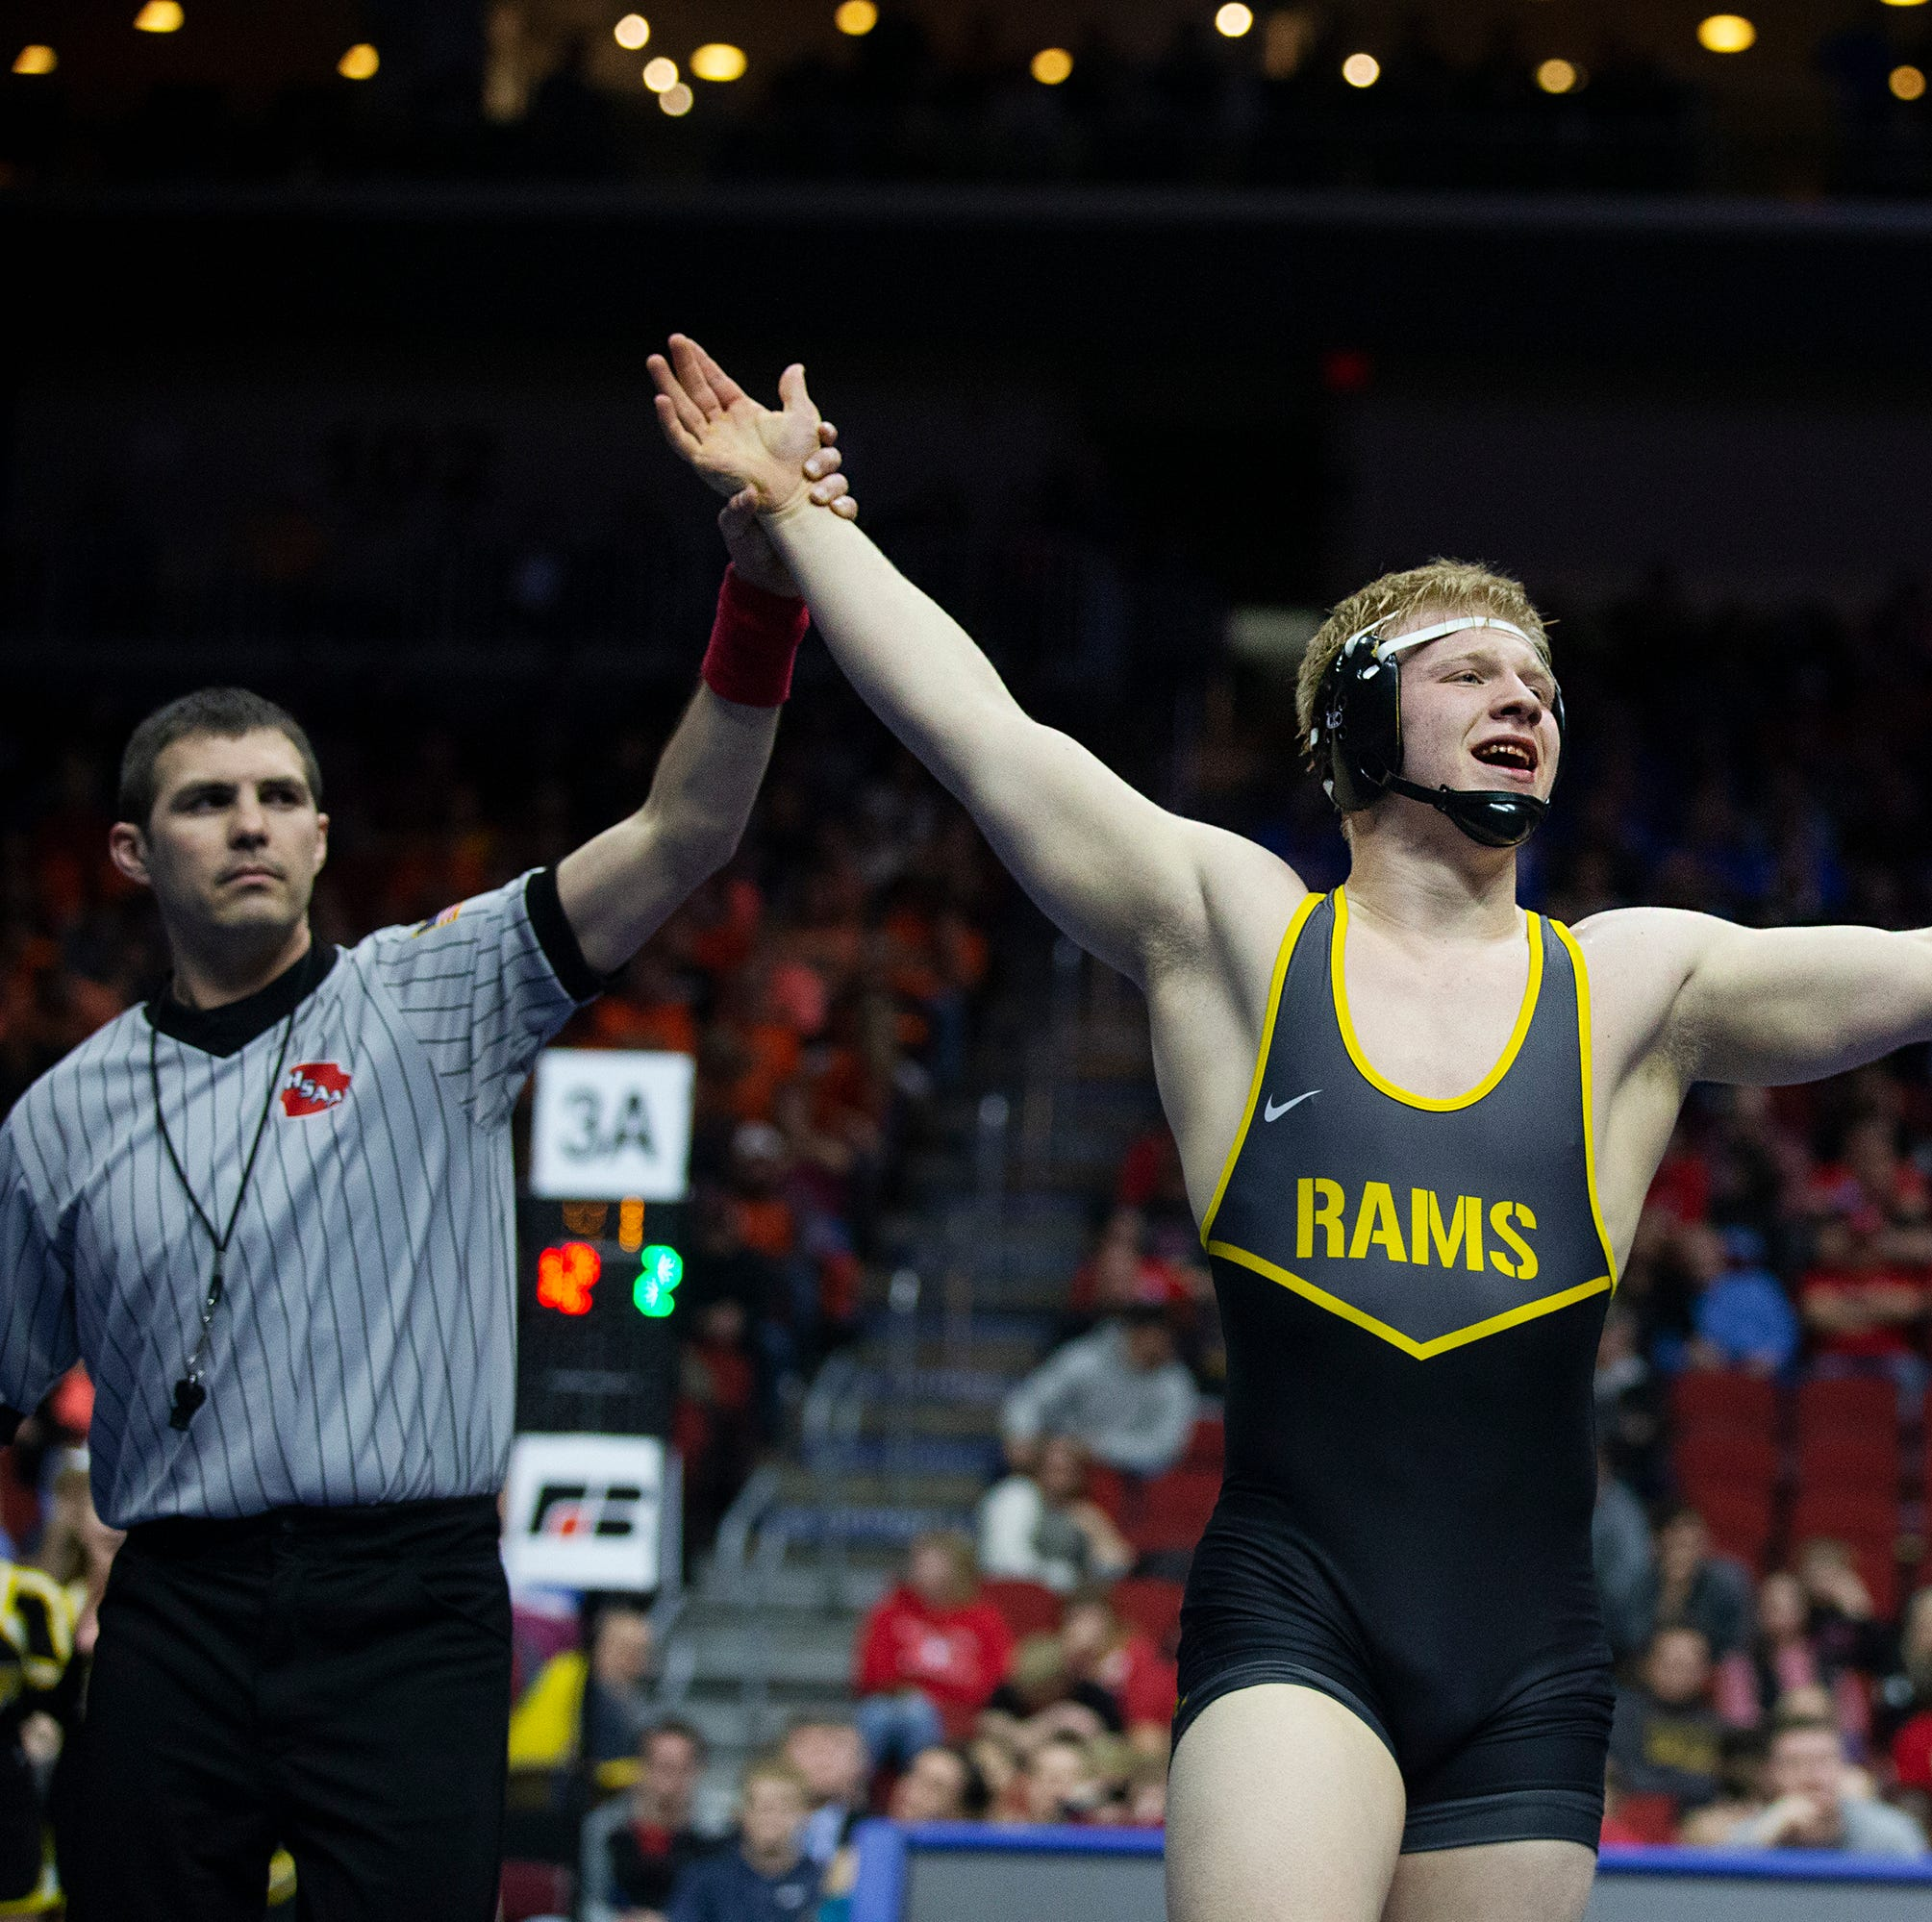 Southeast Polk wrestler celebrates state title by throwing his coach to the mat